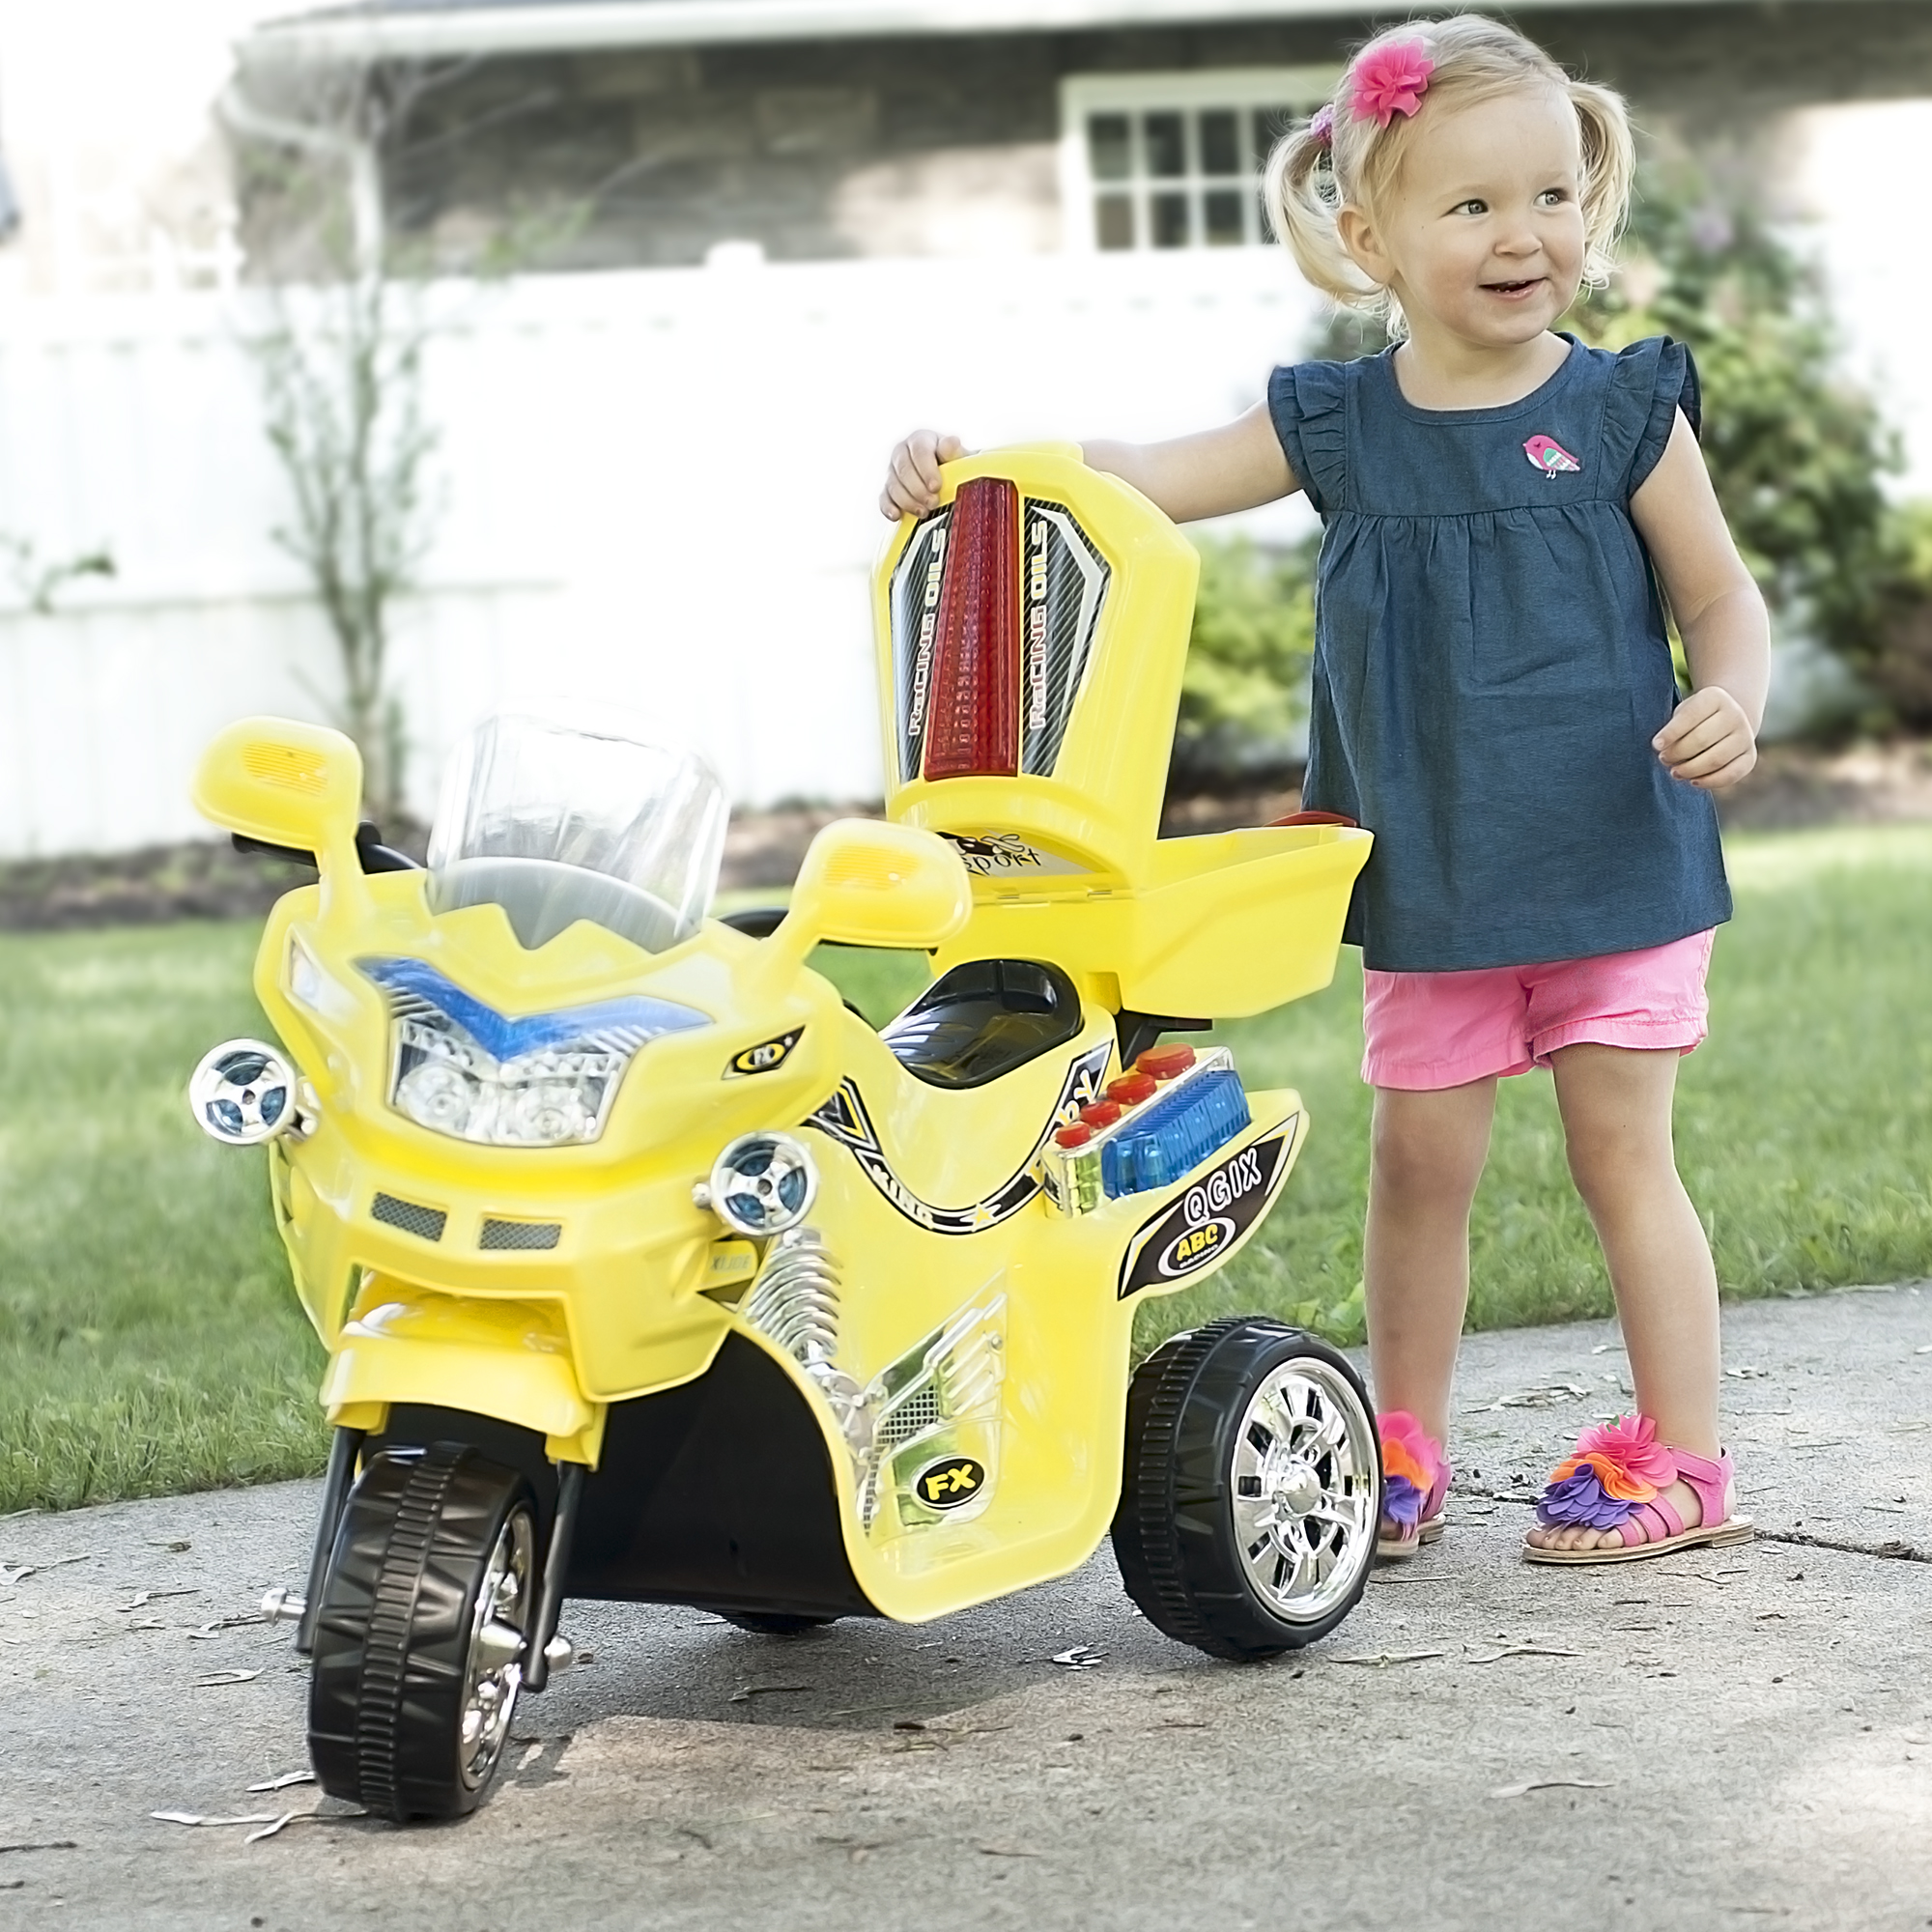 Ride on Toy, 3 Wheel Motorcycle Trike for Kids by Hey! Play! – Battery Powered Ride on Toys for Boys and Girls, 2 - 5 Year Old - Black FX